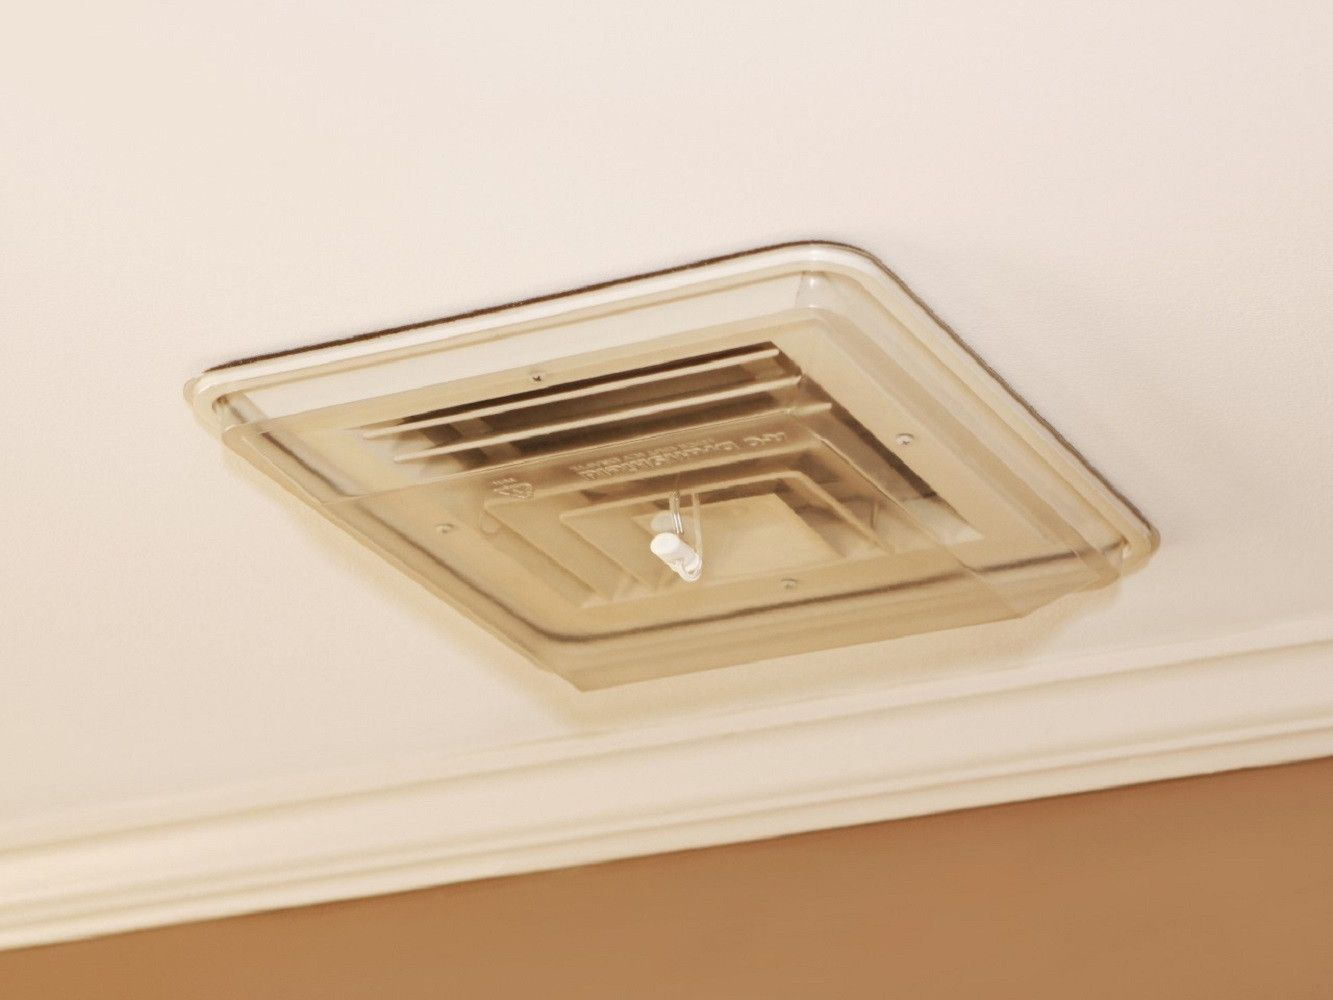 Central Air Conditioning Vent And Grille Covers 24x24